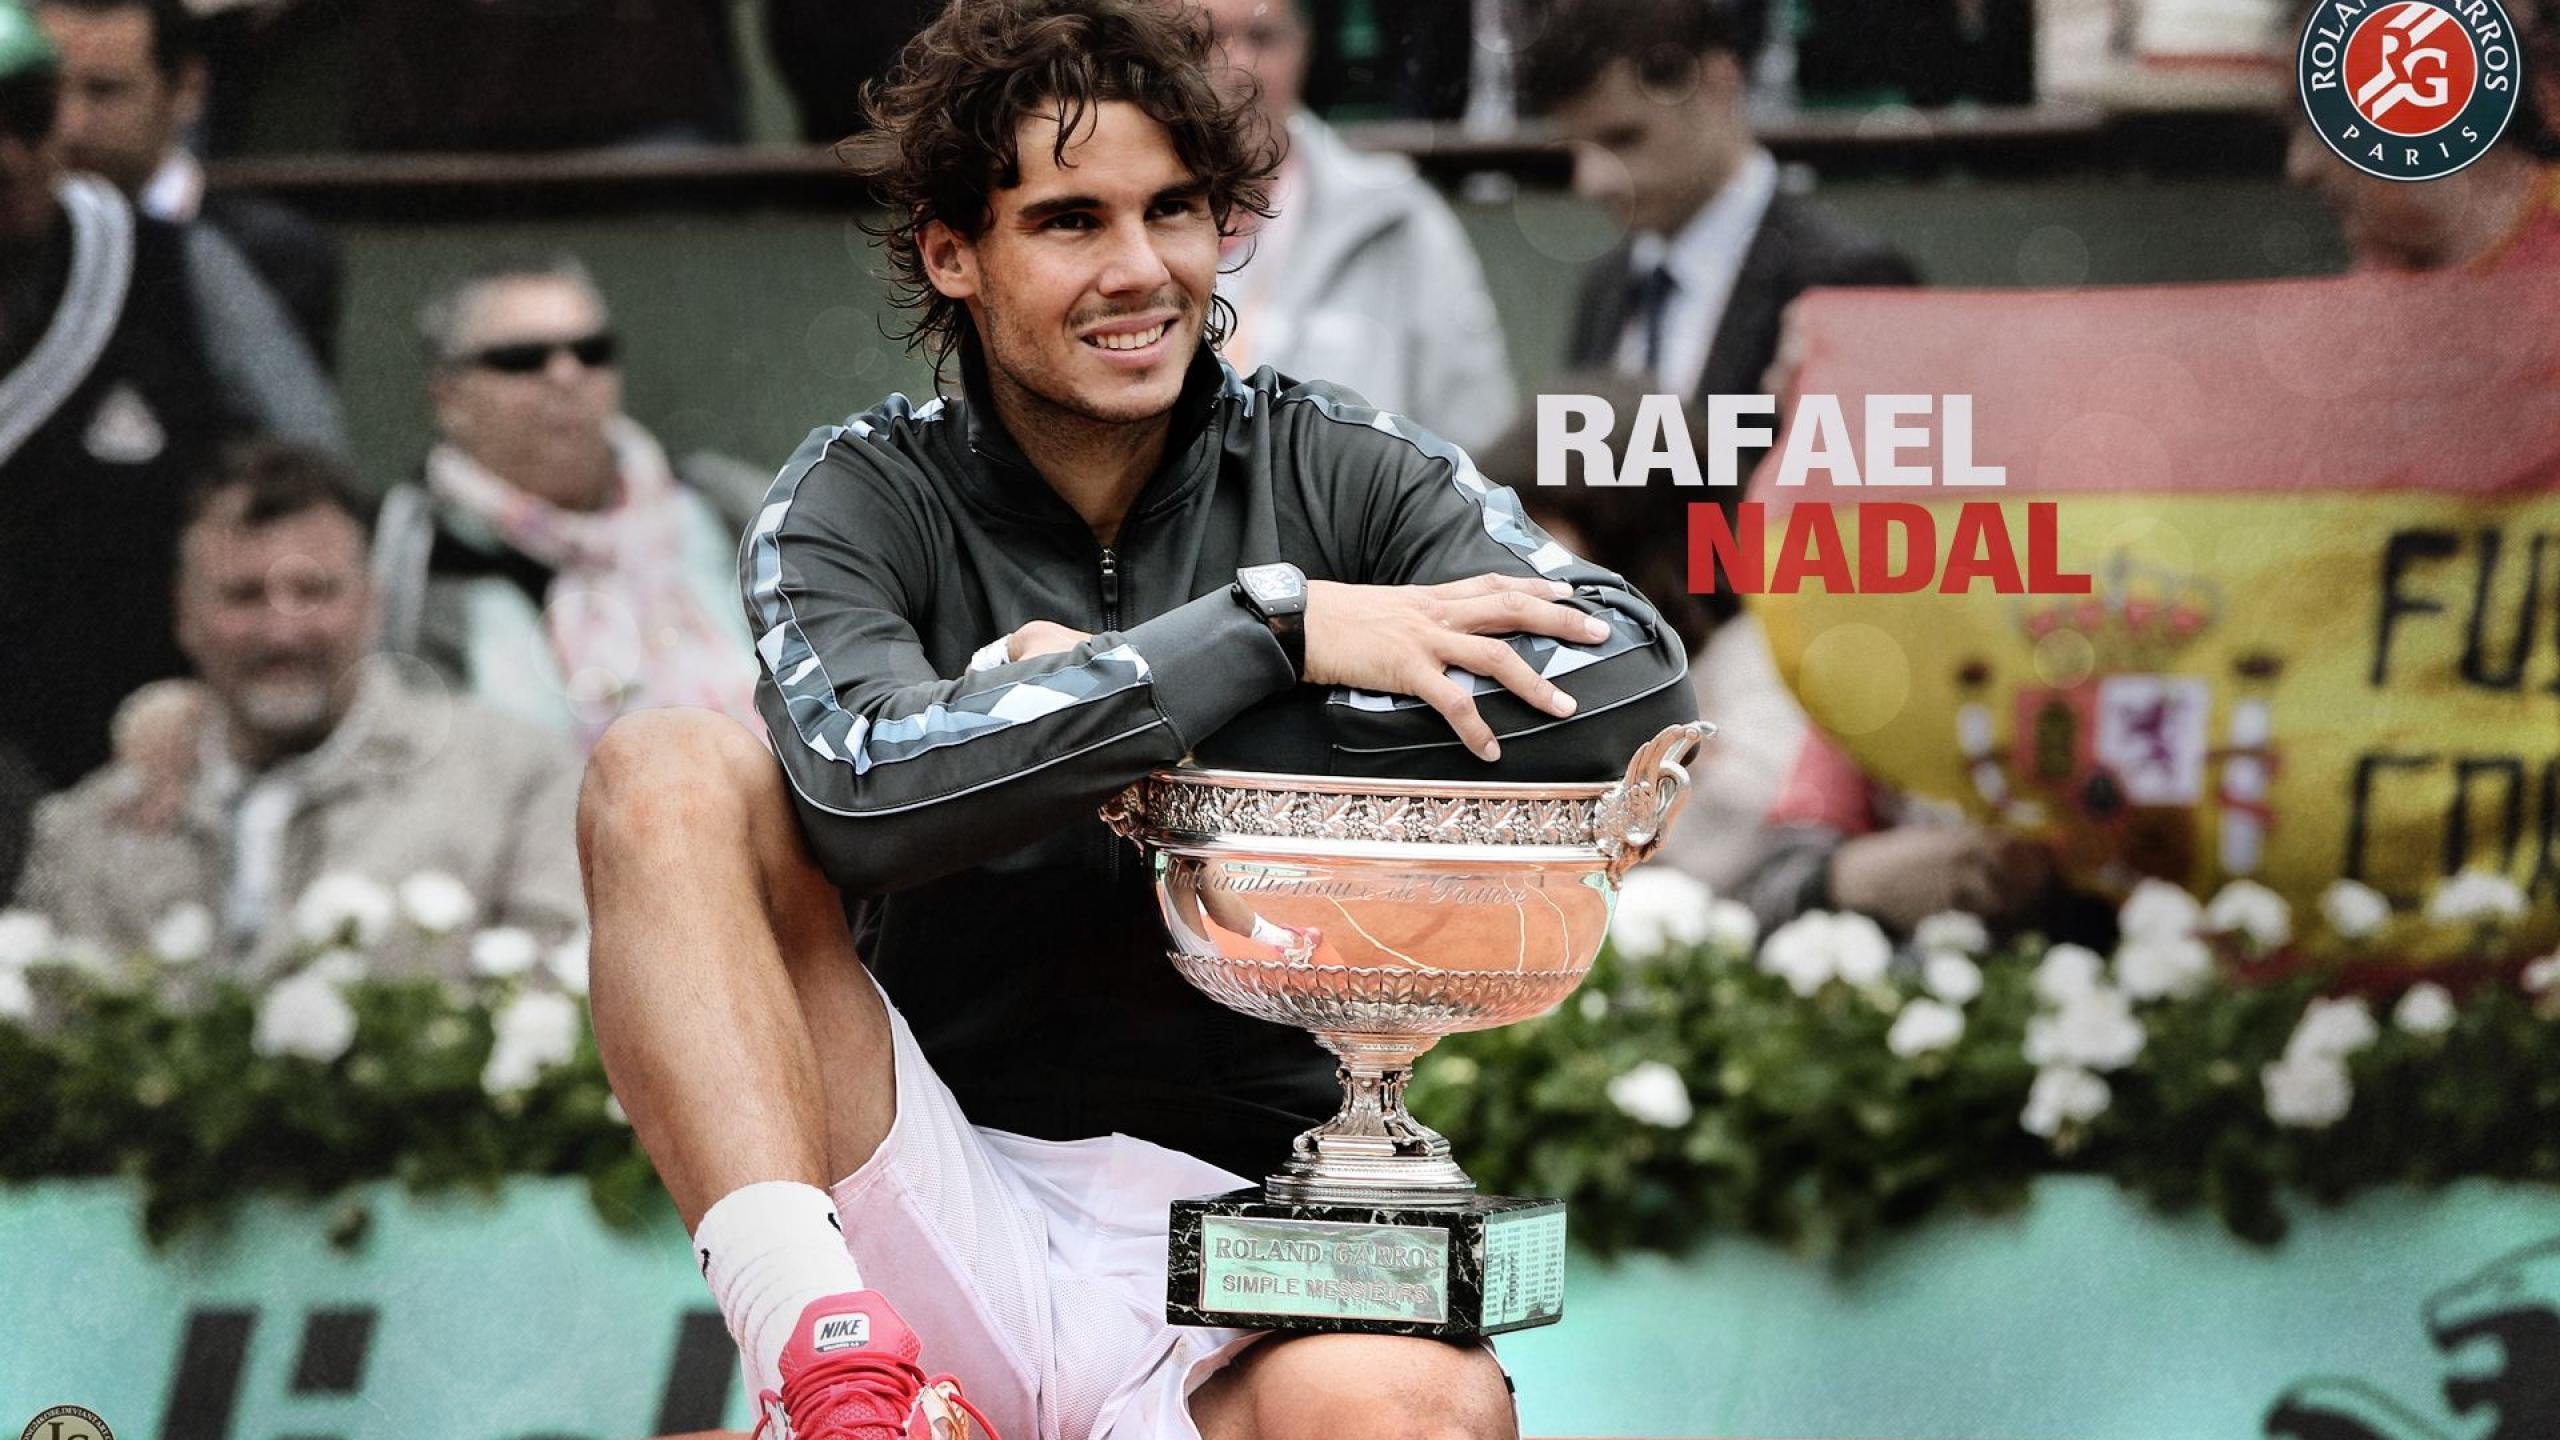 rafael nadal roland garros wallpapers - wallpaper cave